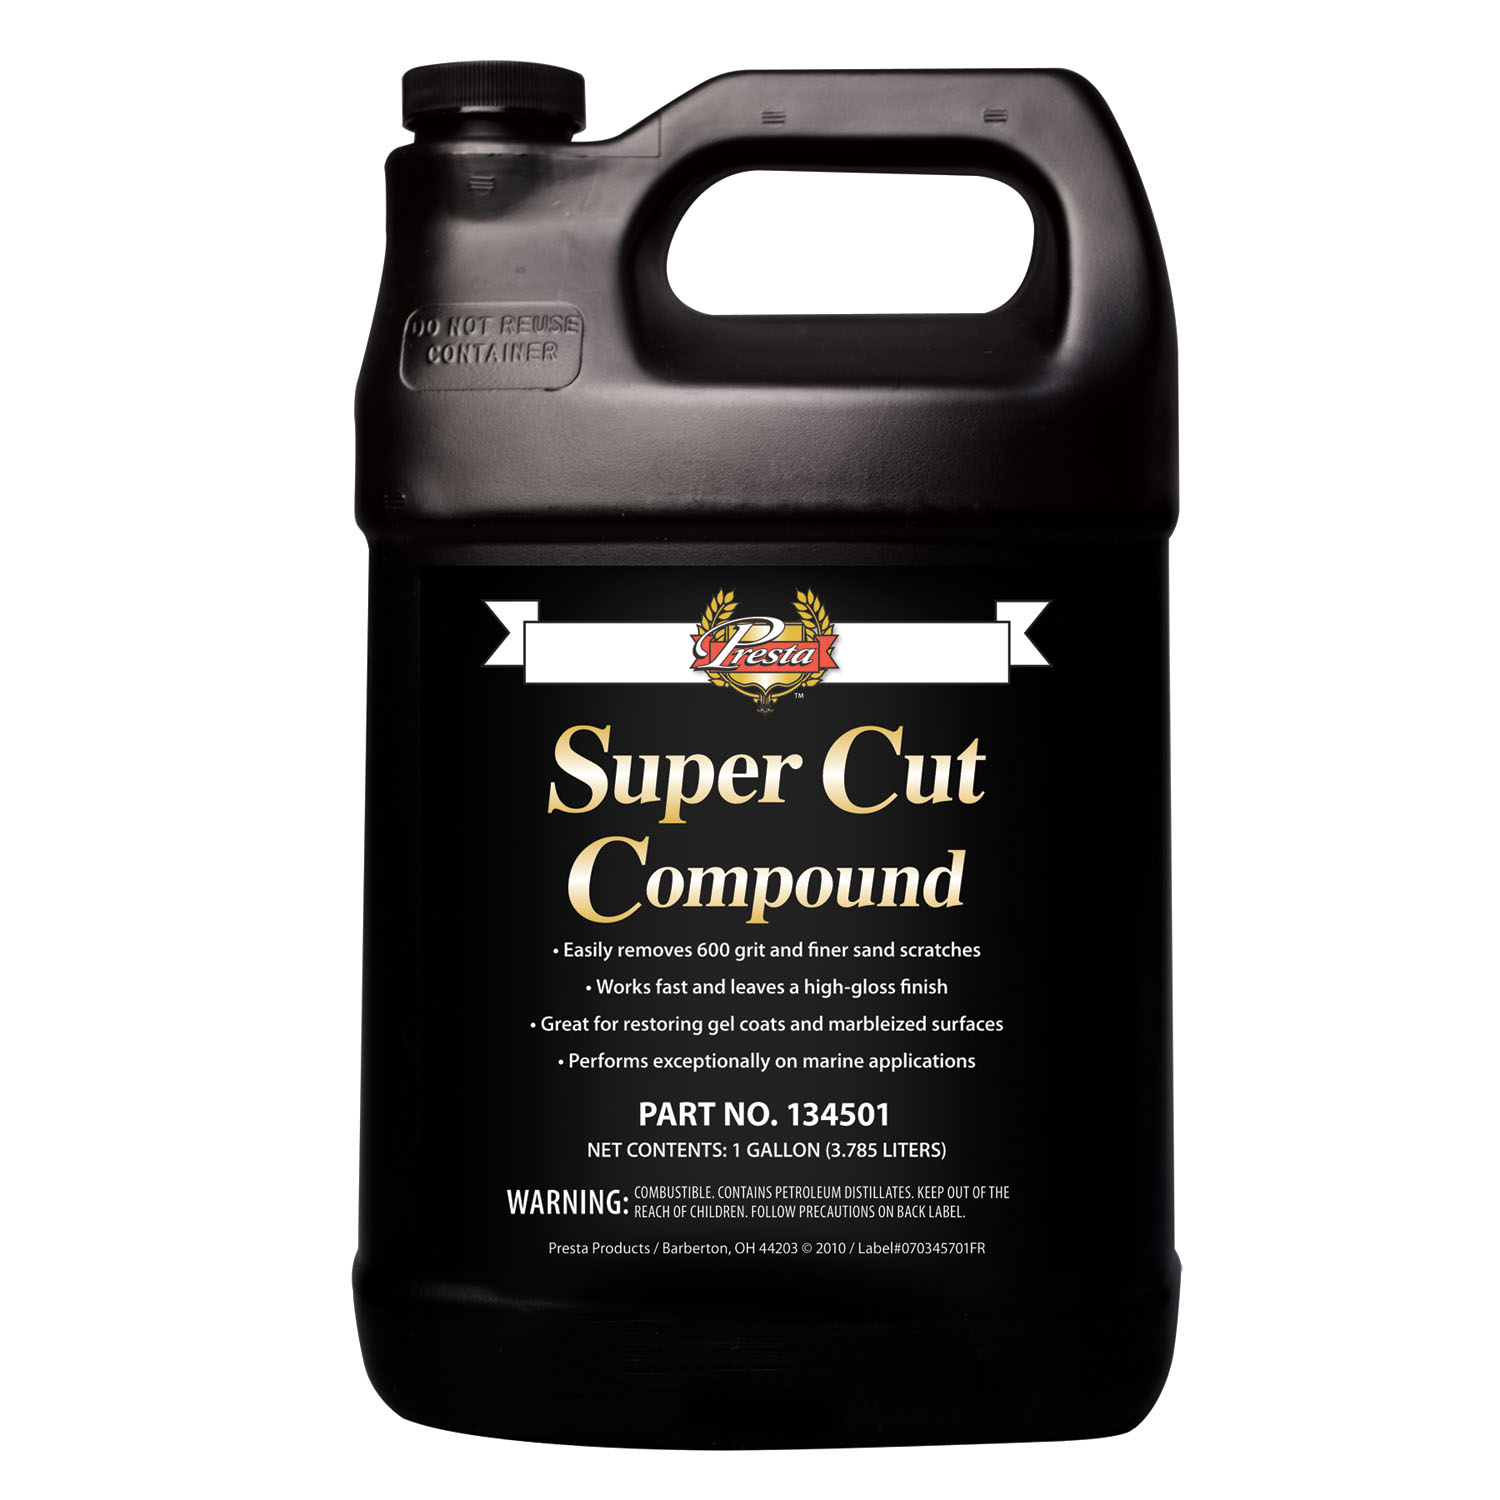 Presta Supercut Compound PST-134501